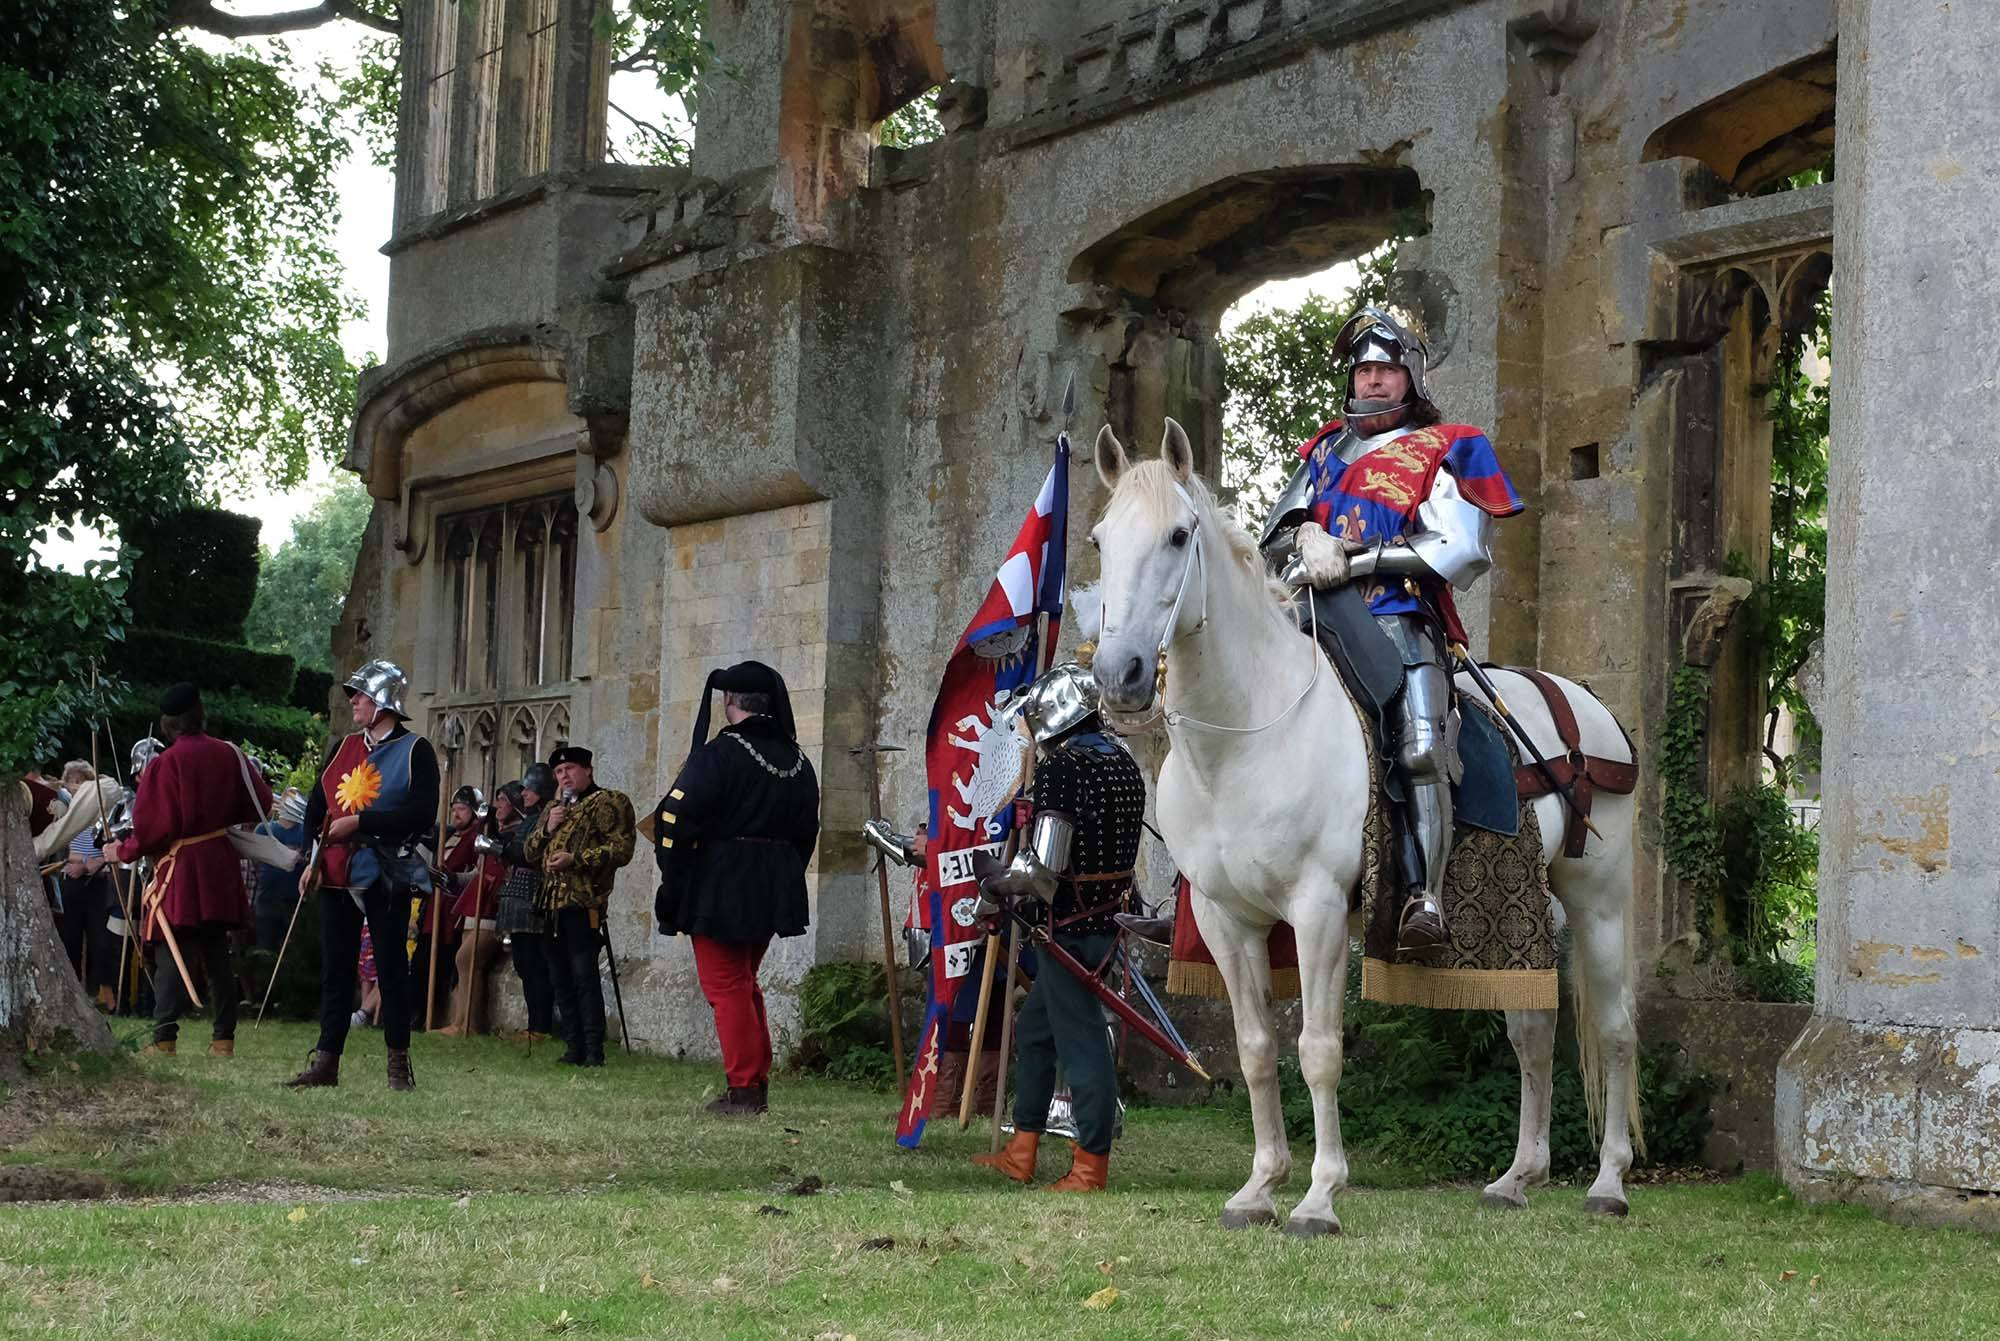 Kingsley and Warlord dressed up as Richard III and his horse White Surrey